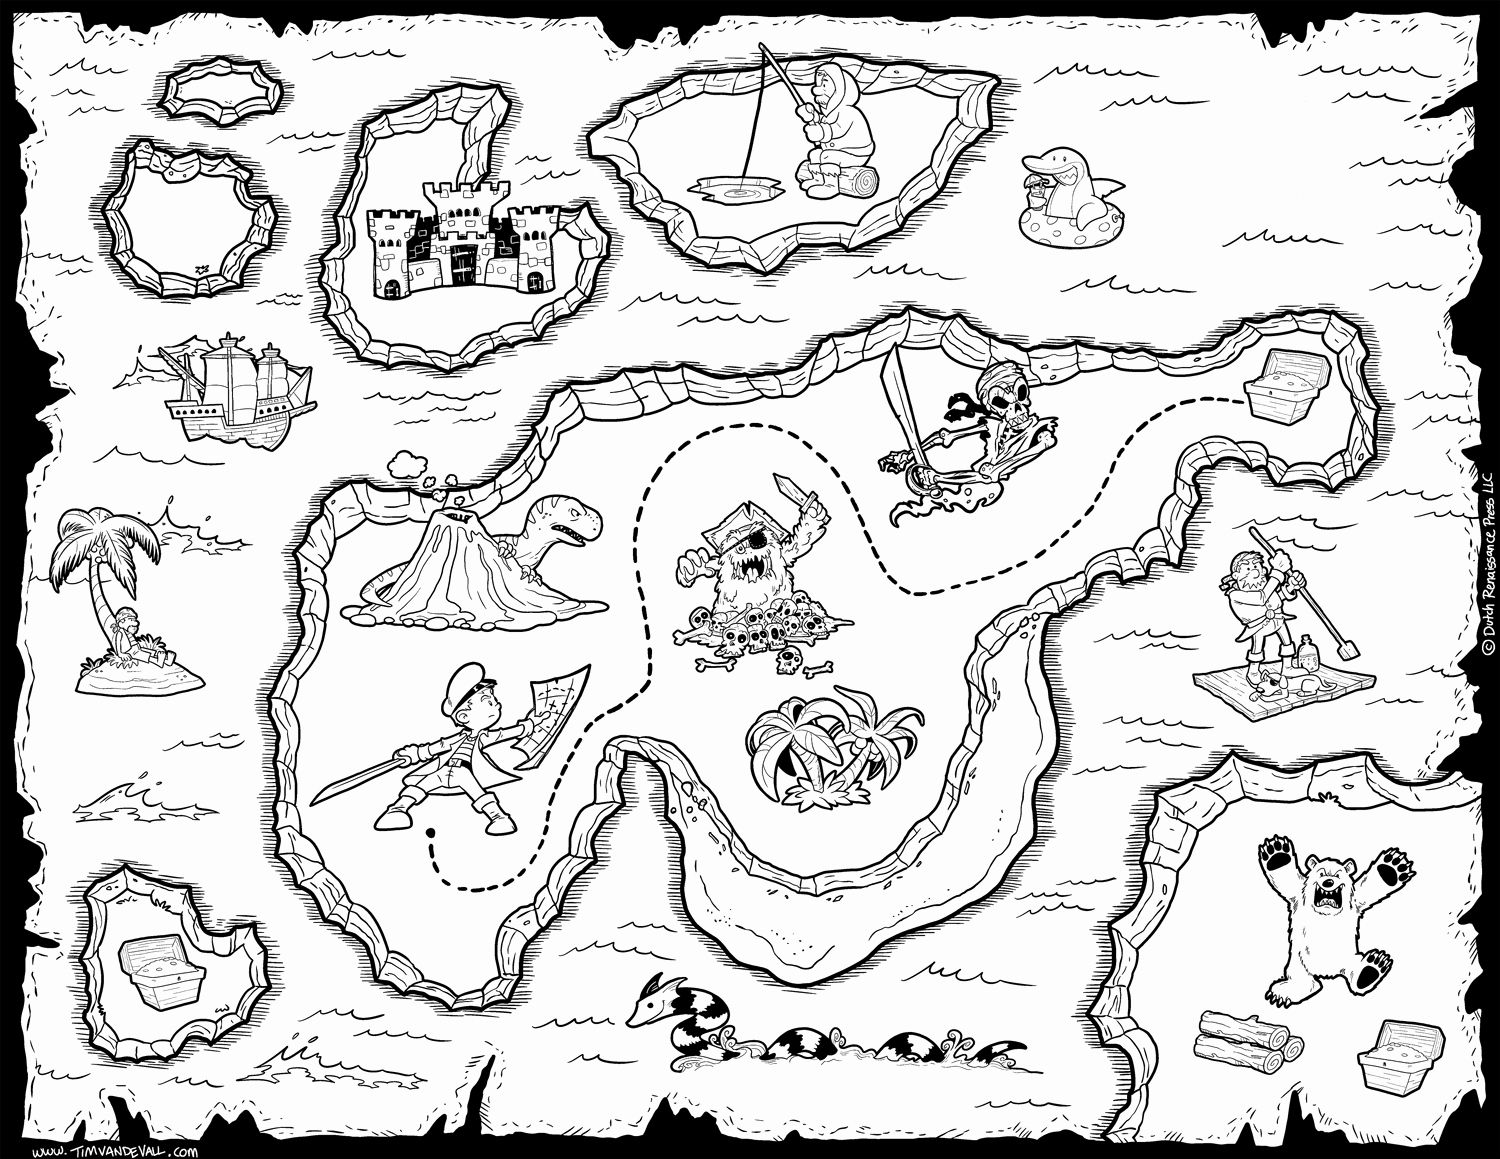 Treasure Map Coloring Page Unique Free Pirate Treasure Maps For A Pirate Birthday Party In 2020 Pirate Treasure Maps Treasure Maps Pirate Coloring Pages